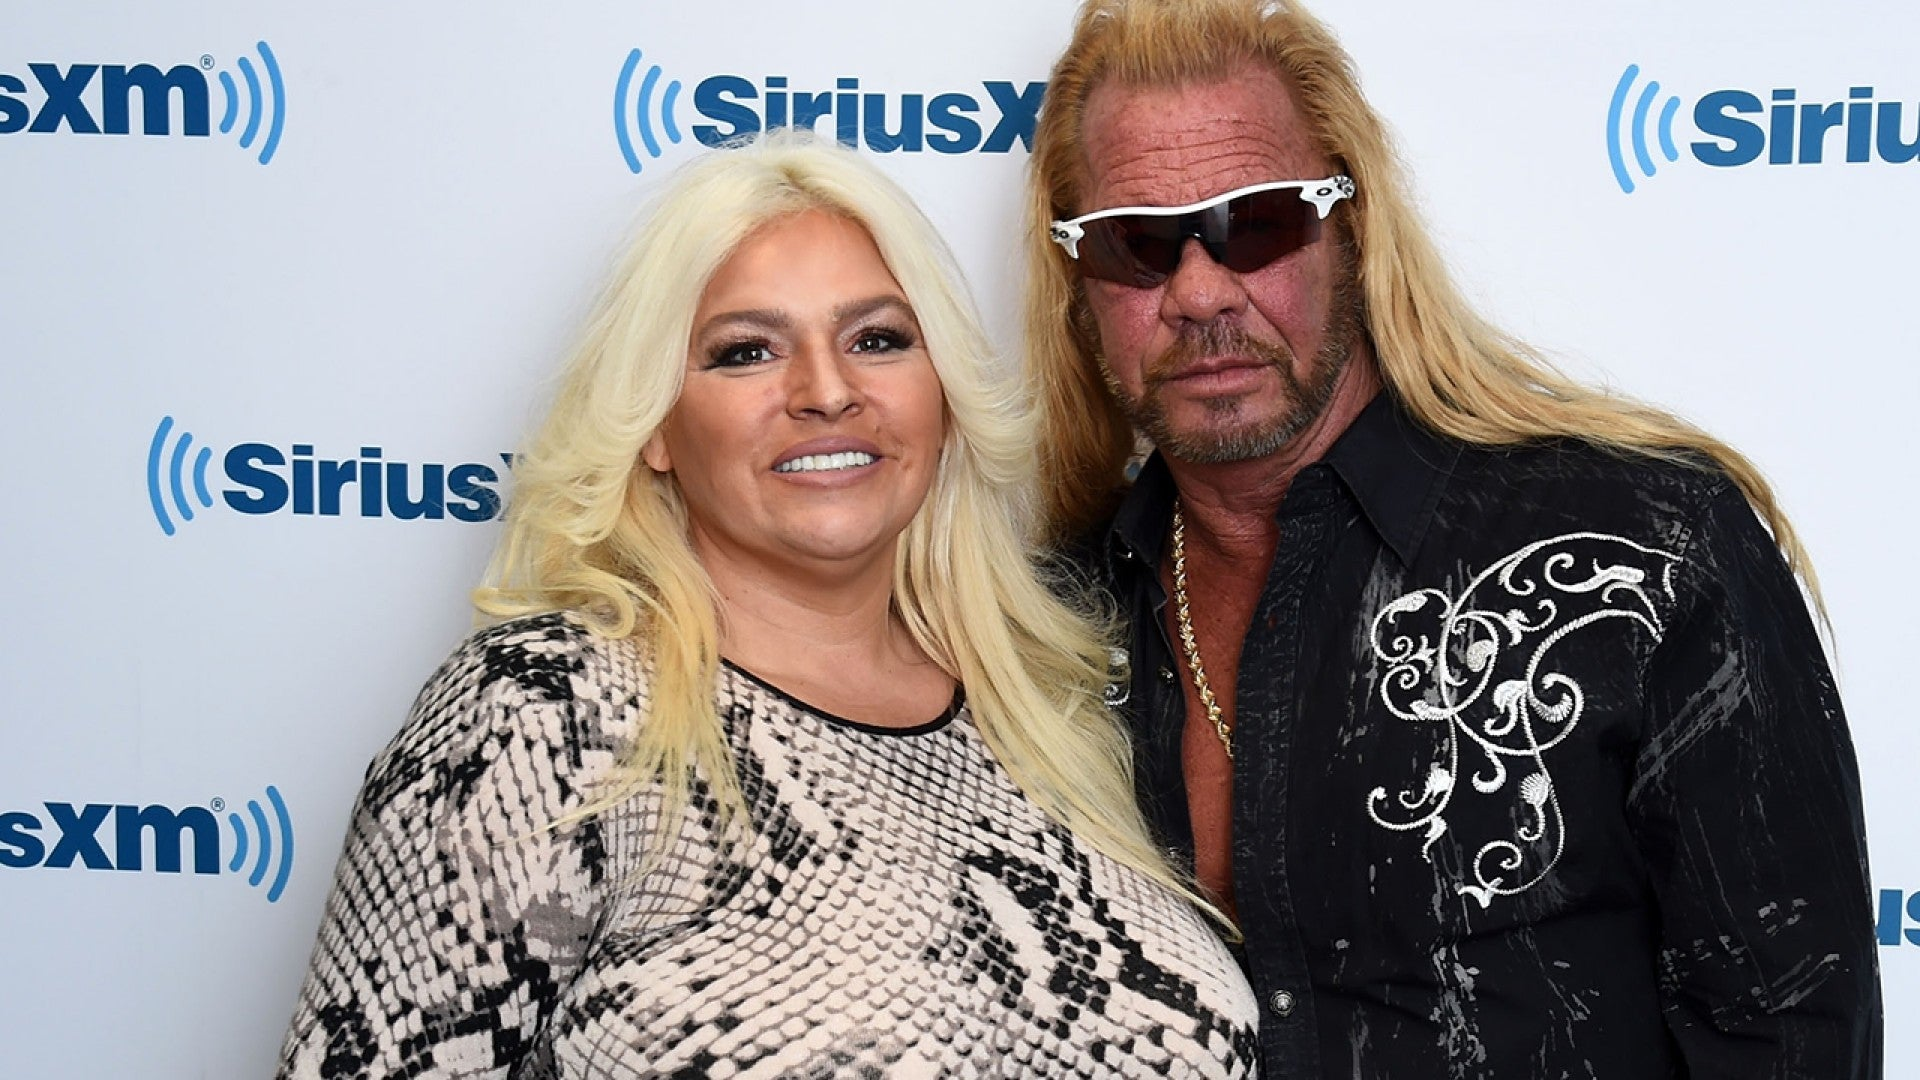 Beth Chapman Dog The Bounty Hunter Star Dead At 51